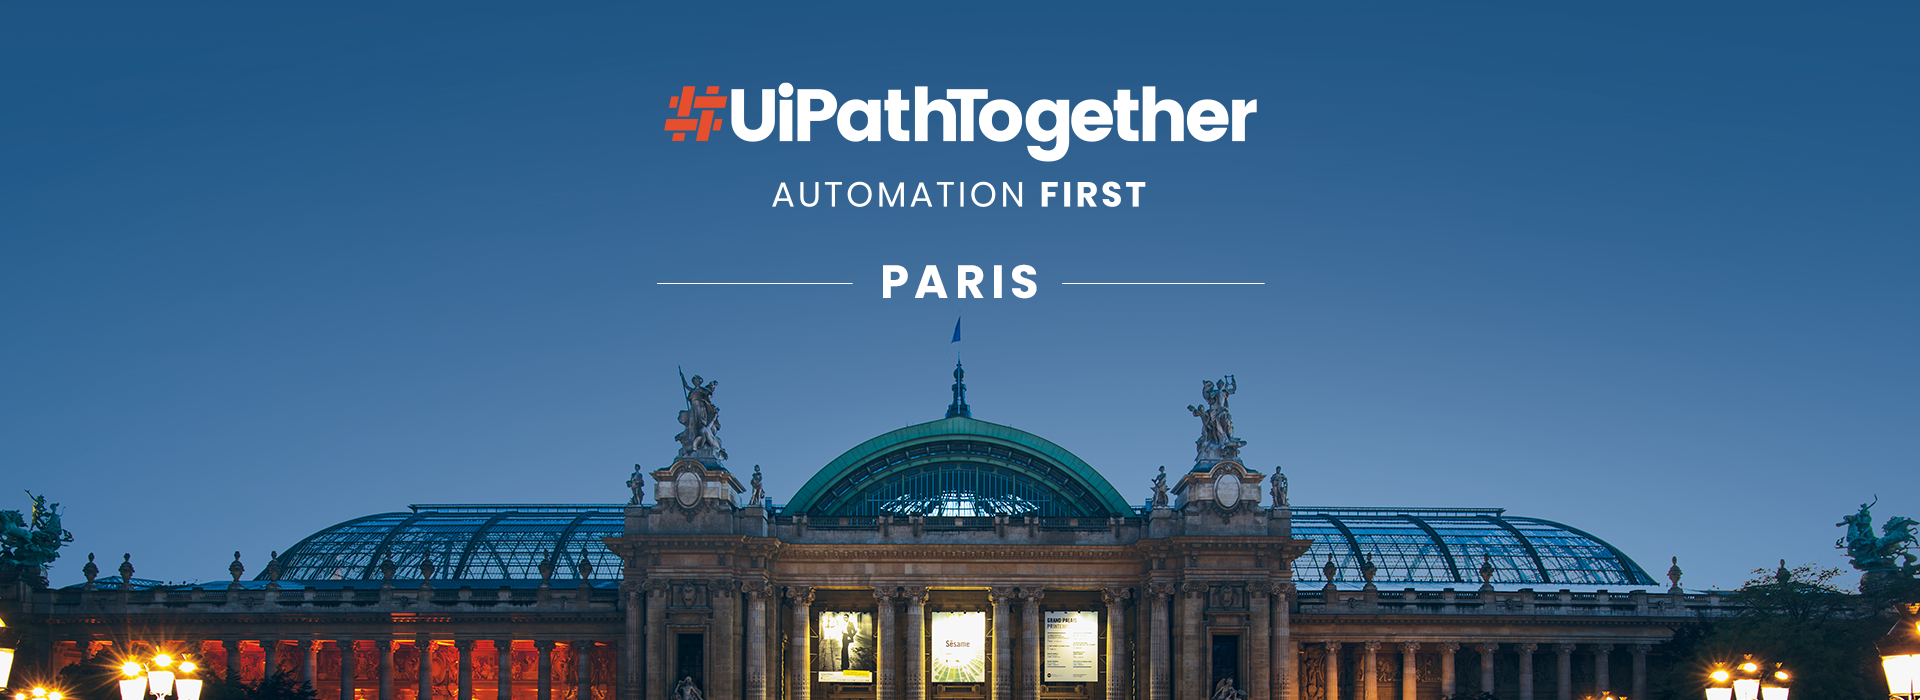 UiPath Together Paris 2019